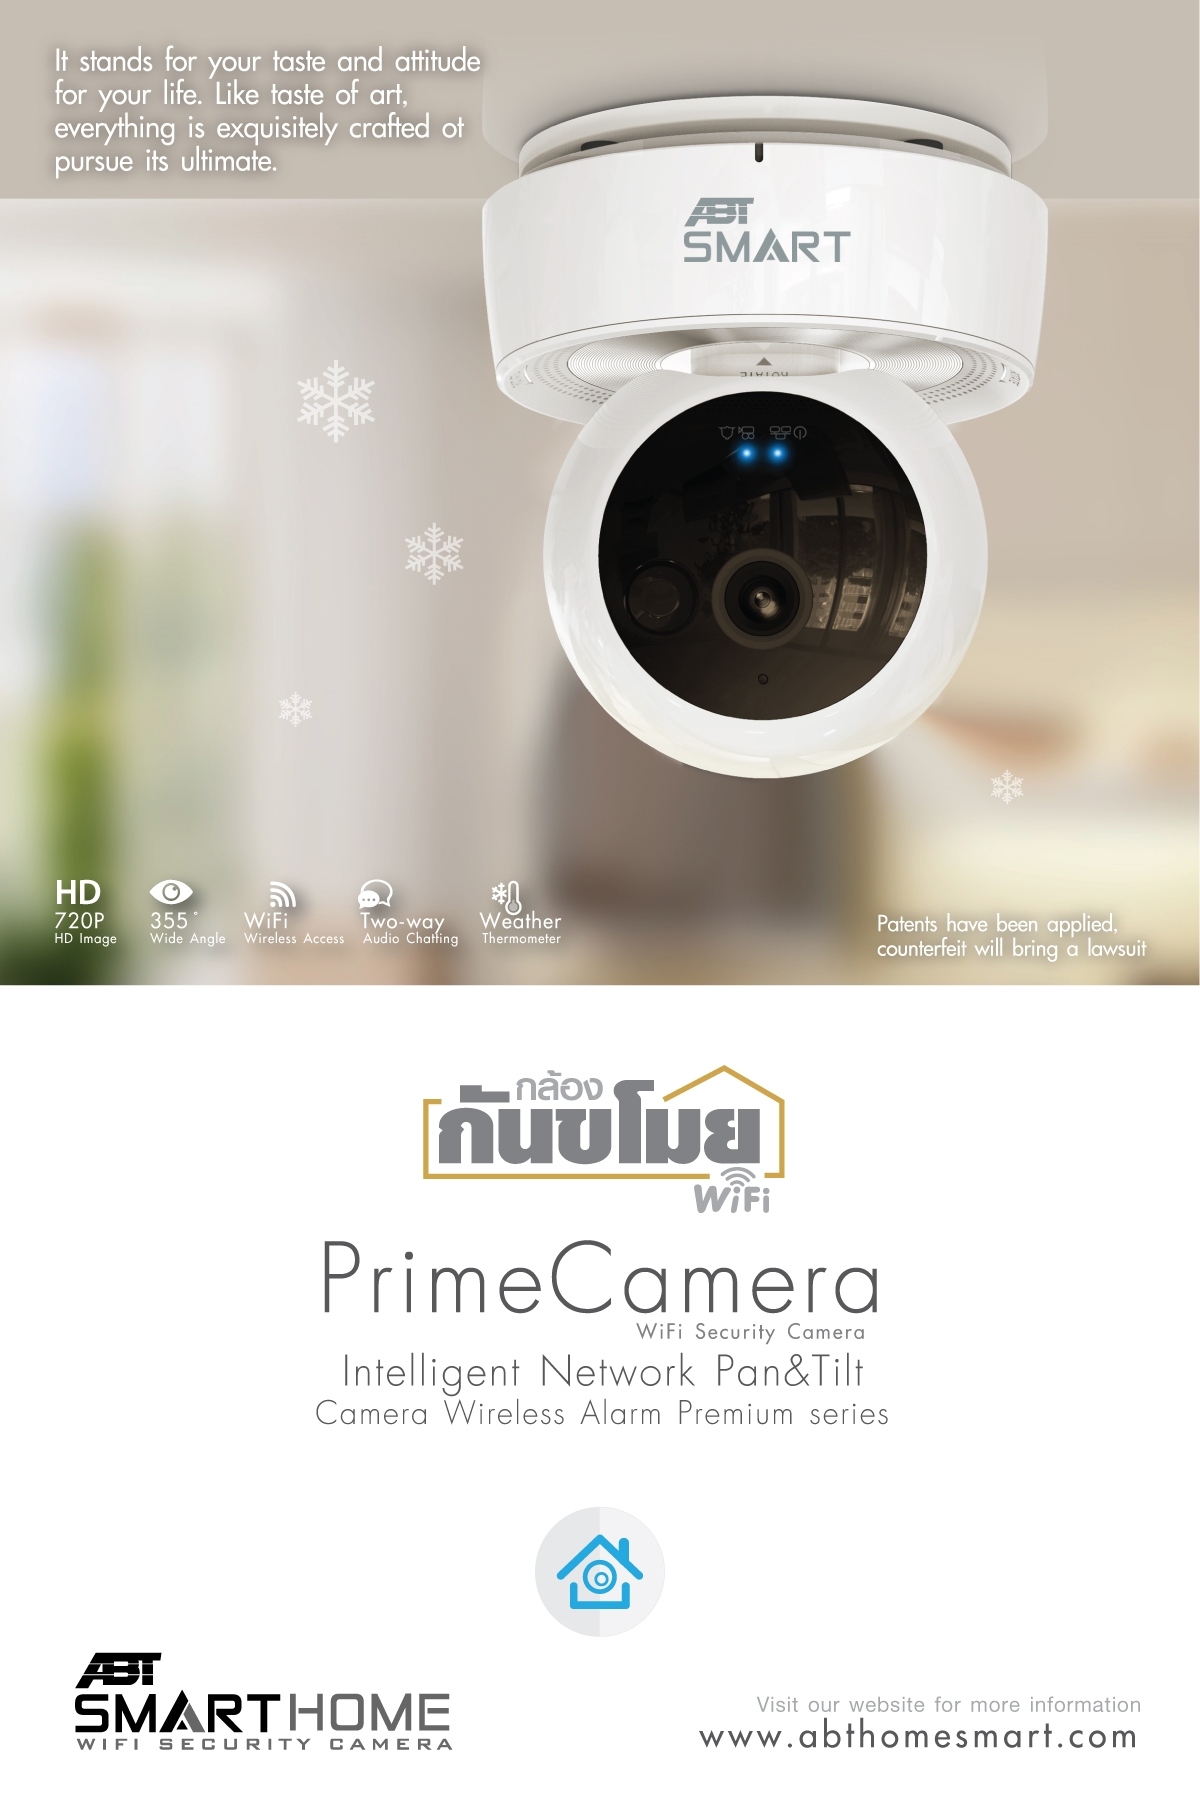 สัญญาณกันขโมยบ้าน - กล้องกันขโมย WiFi รุ้น PrimeCamera WiFi Security Camera Intelligent Network Pan&Tilt Camera Wireless Alarm Premium series - ABT SMART HOME